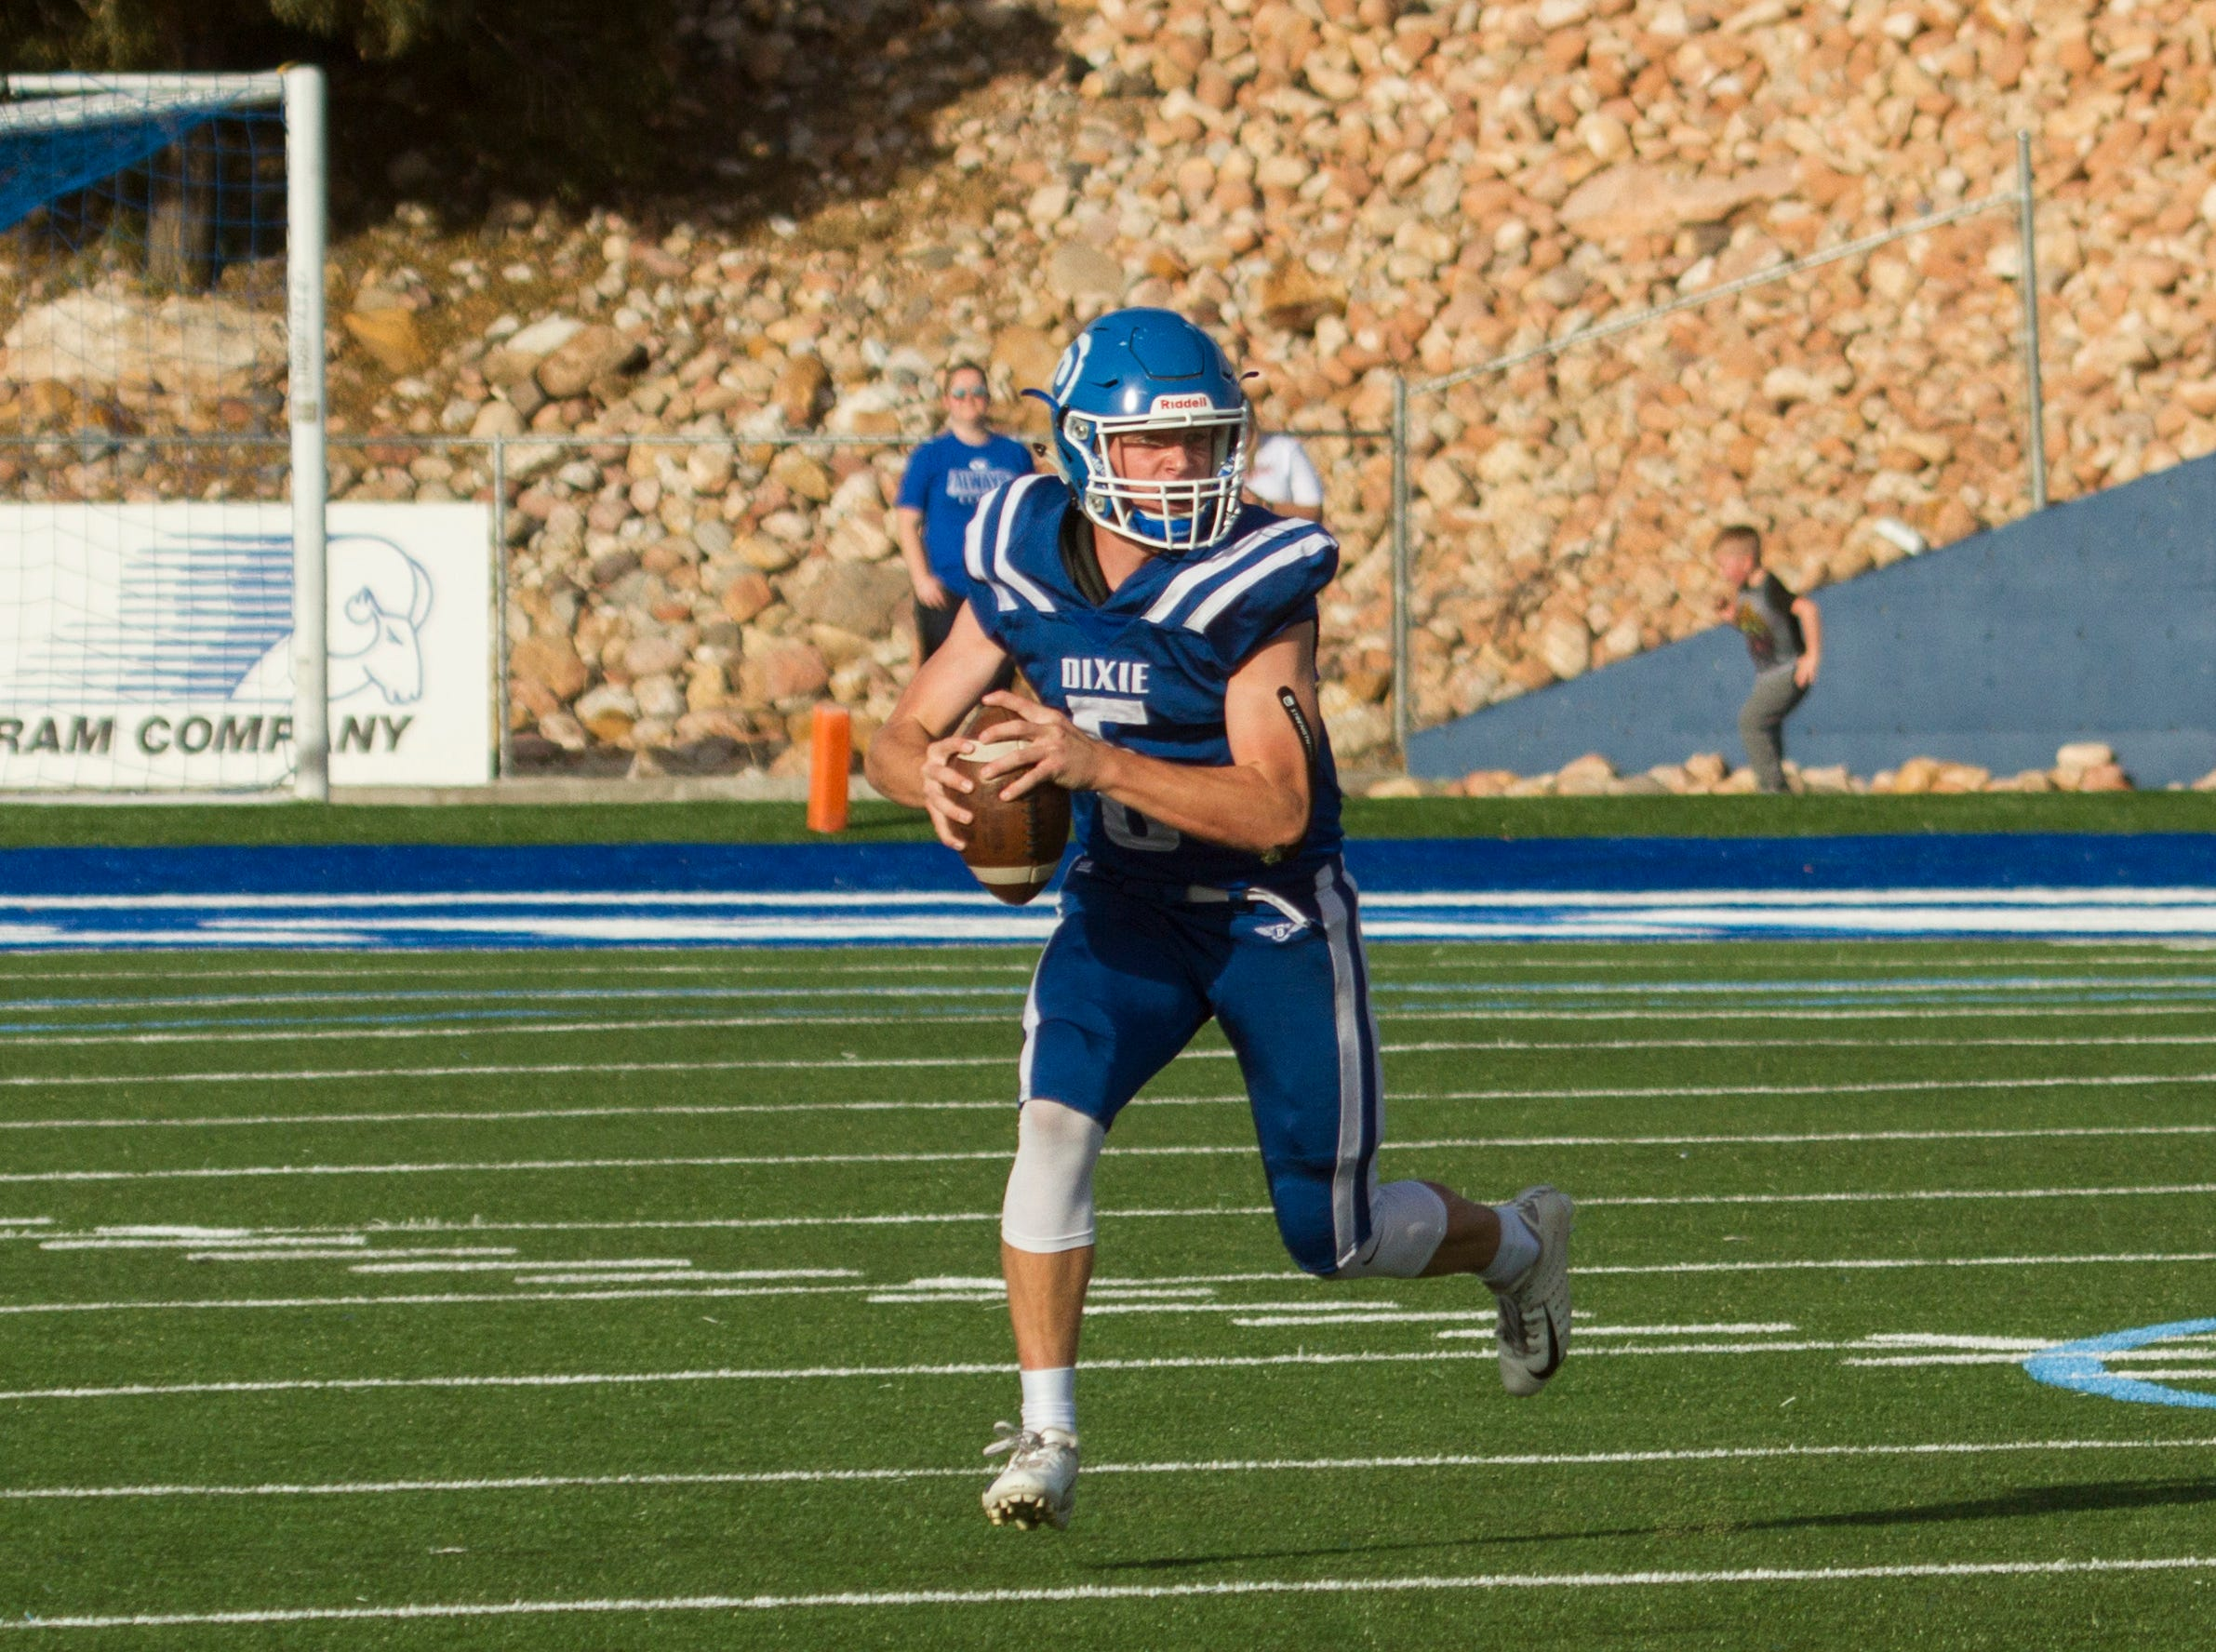 Dixie High football takes on Spanish Fork Friday, Nov. 2, 2018.